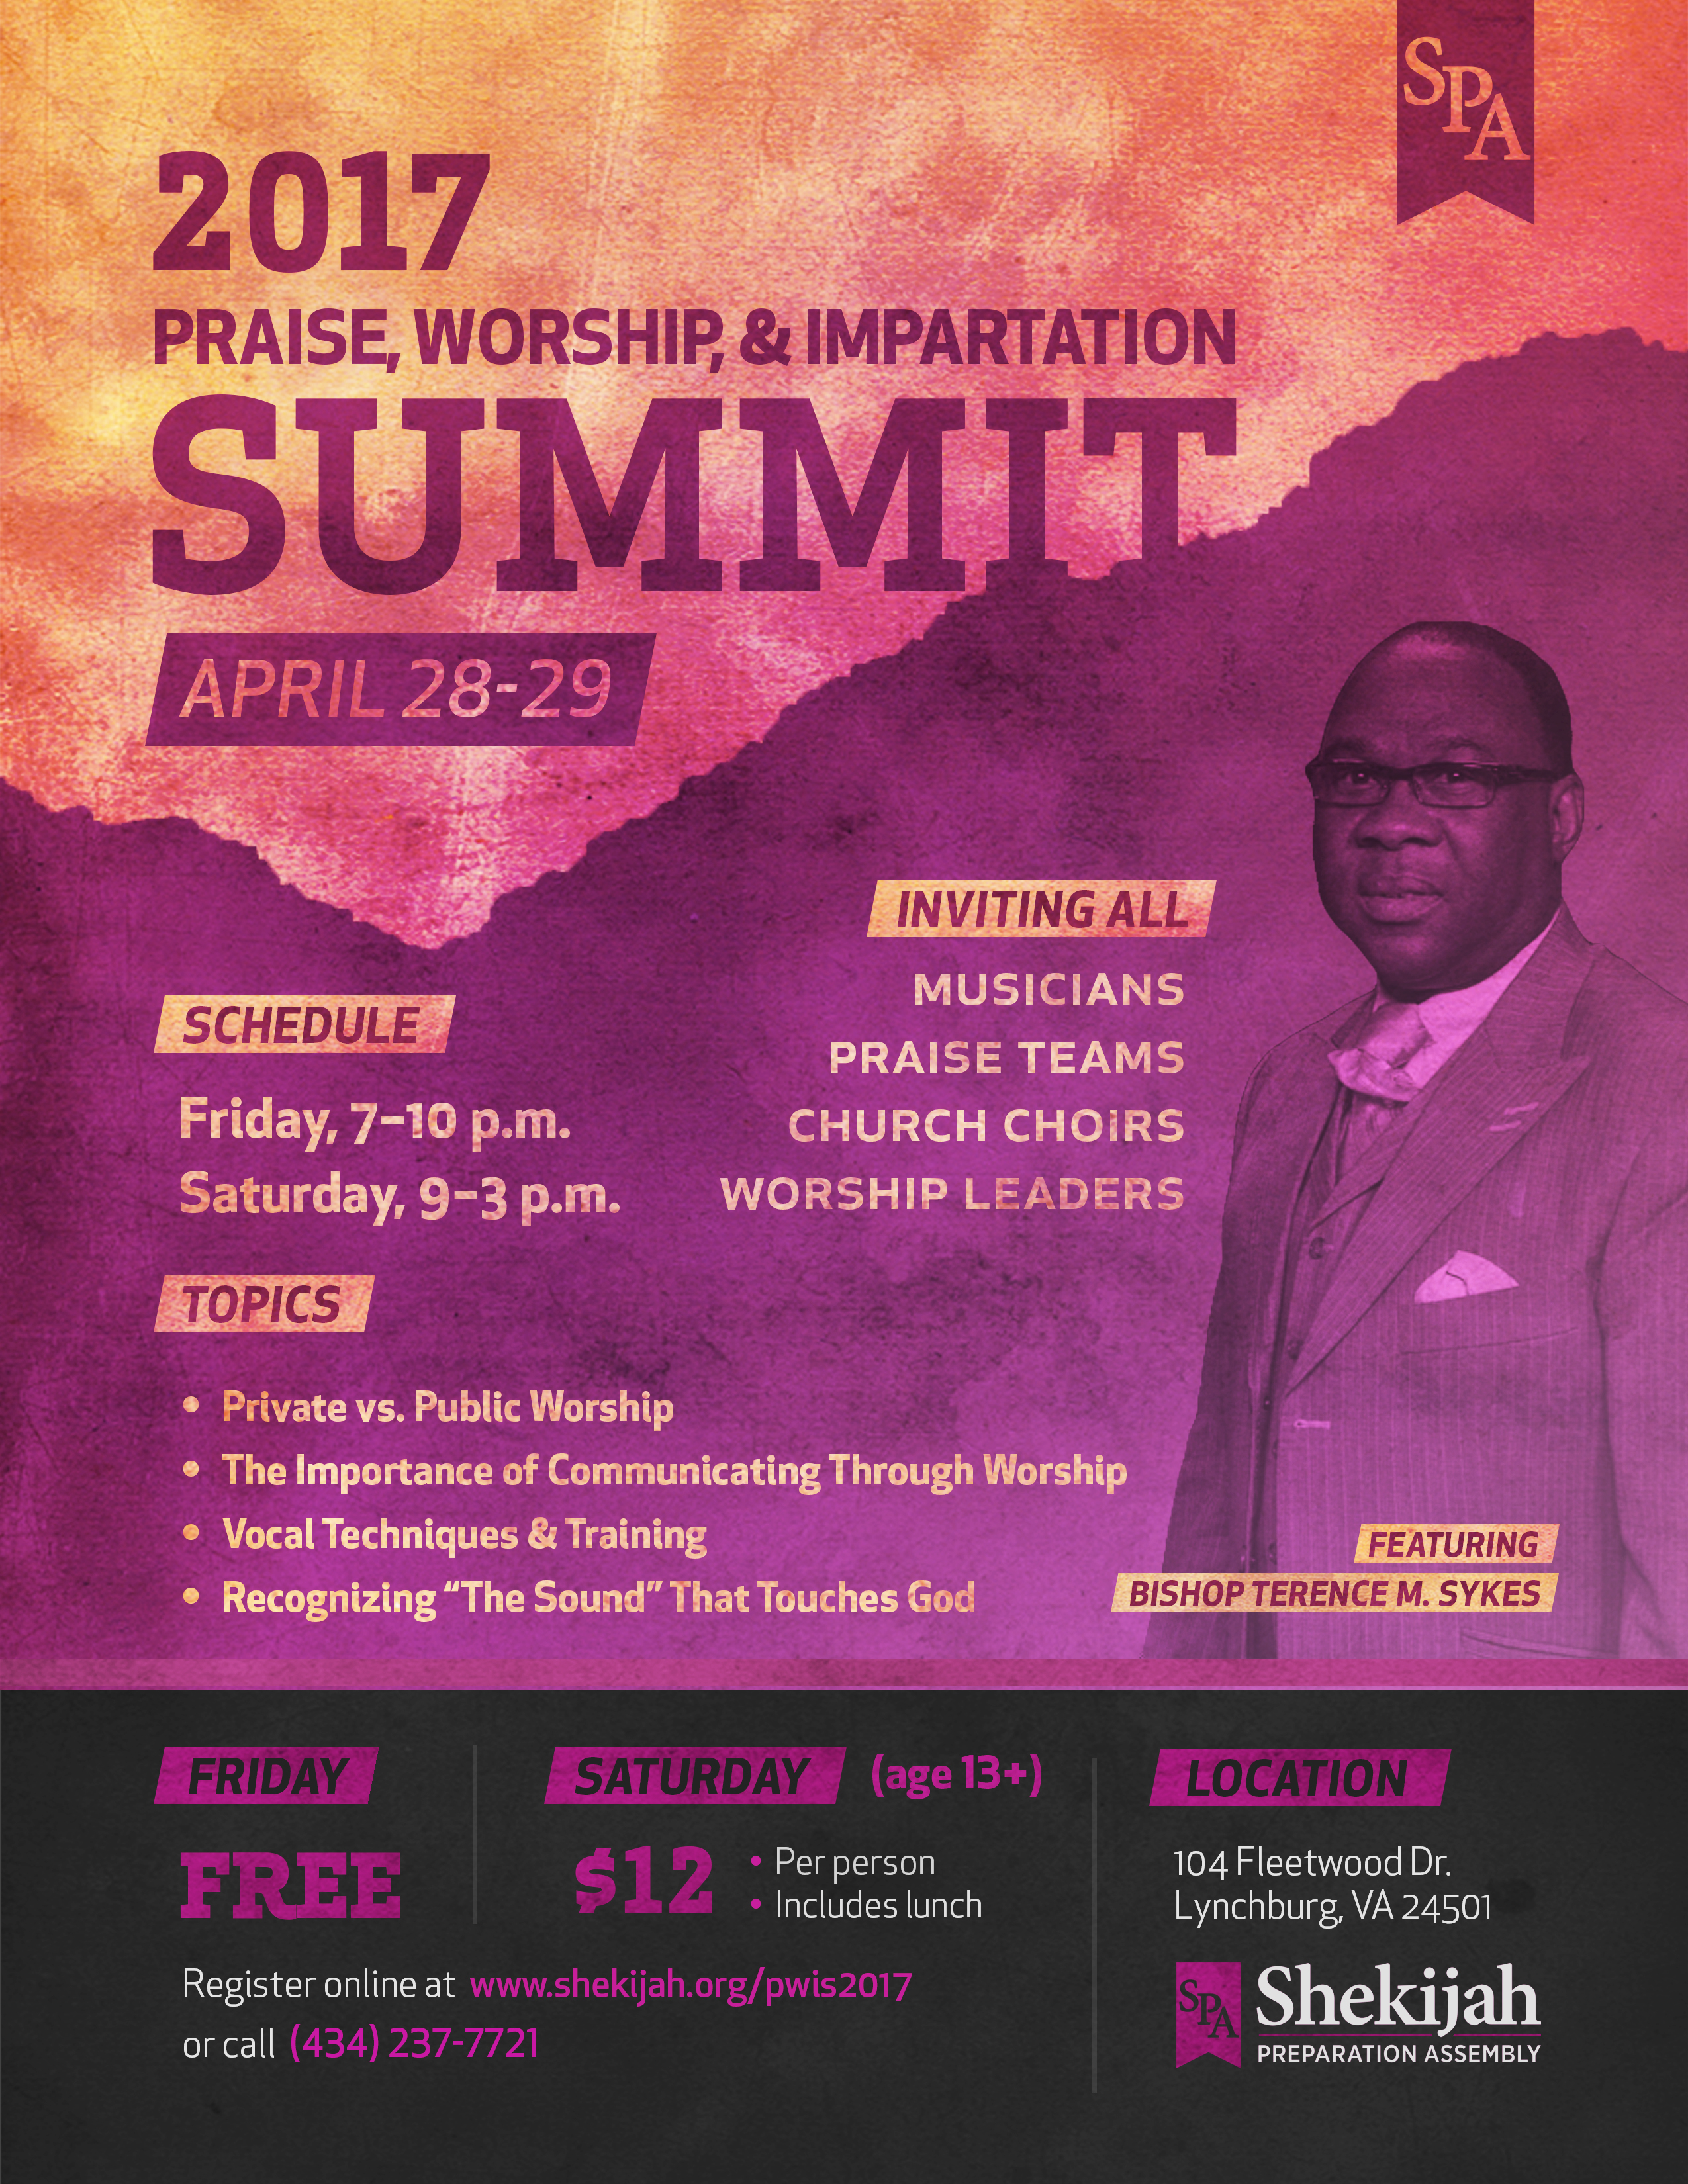 Praise, Worship, & Impartation Summit 2017